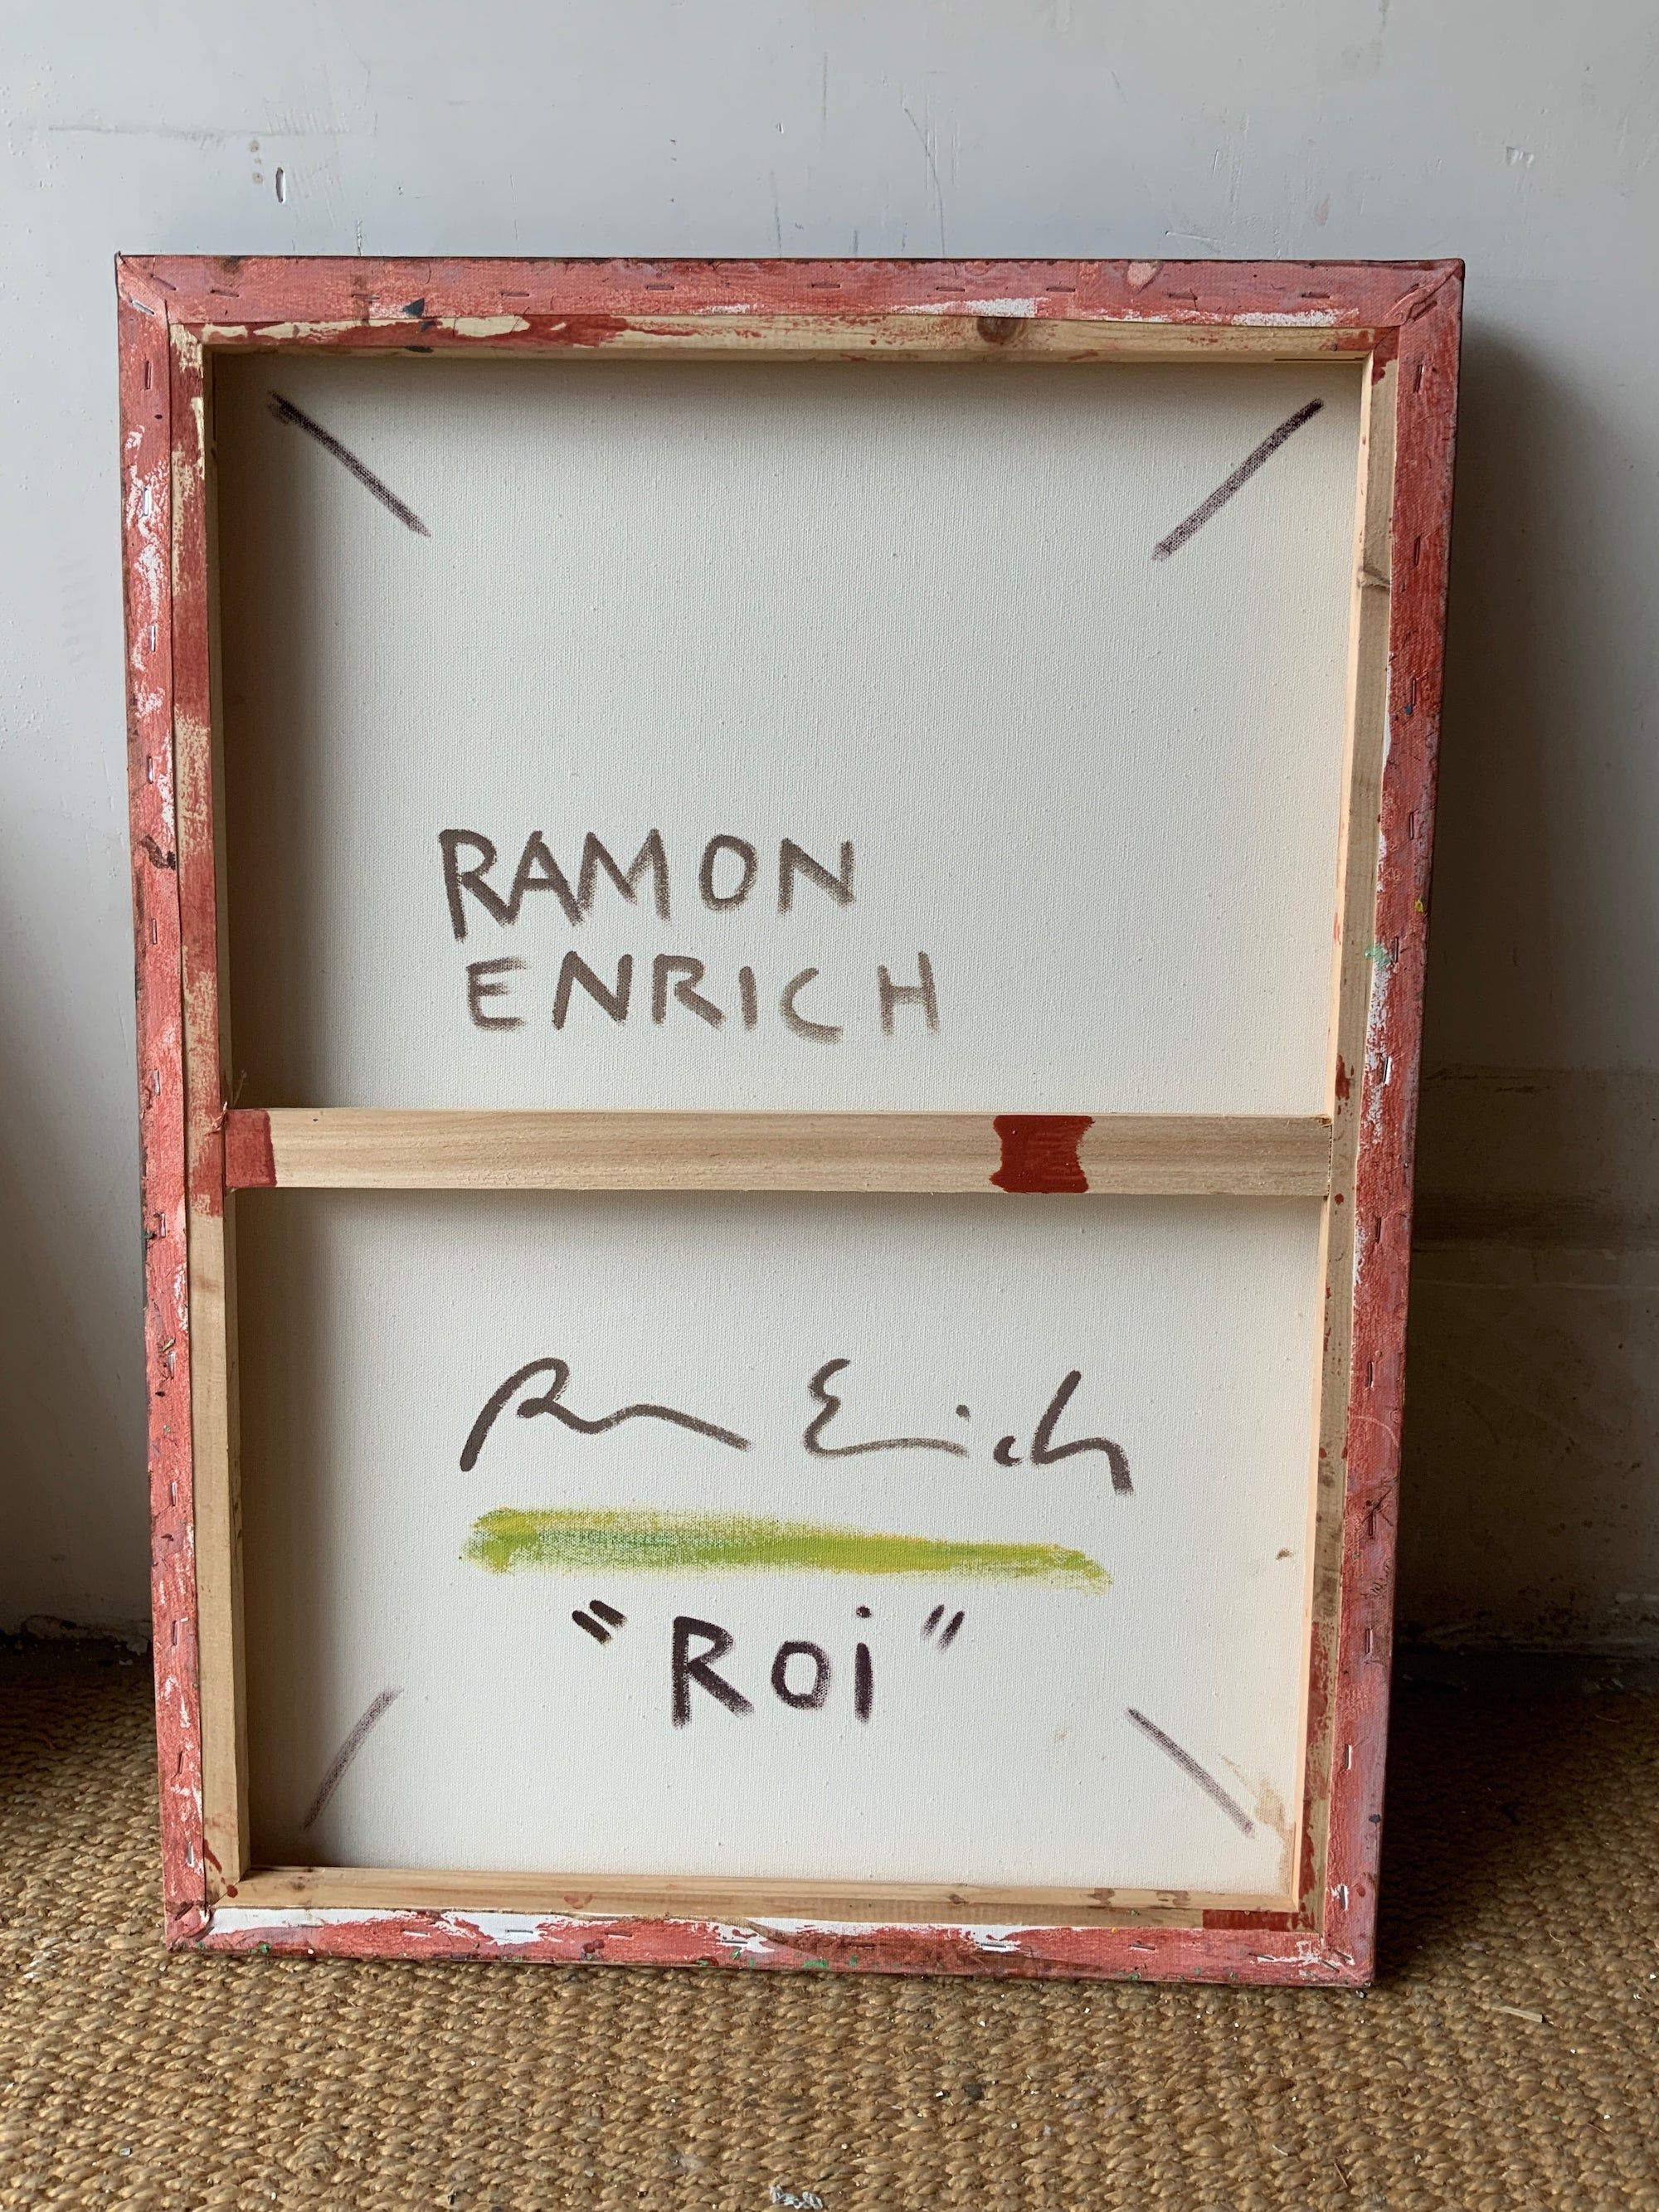 ROI,Ramon Enrich,Contemporary painting, detail 2